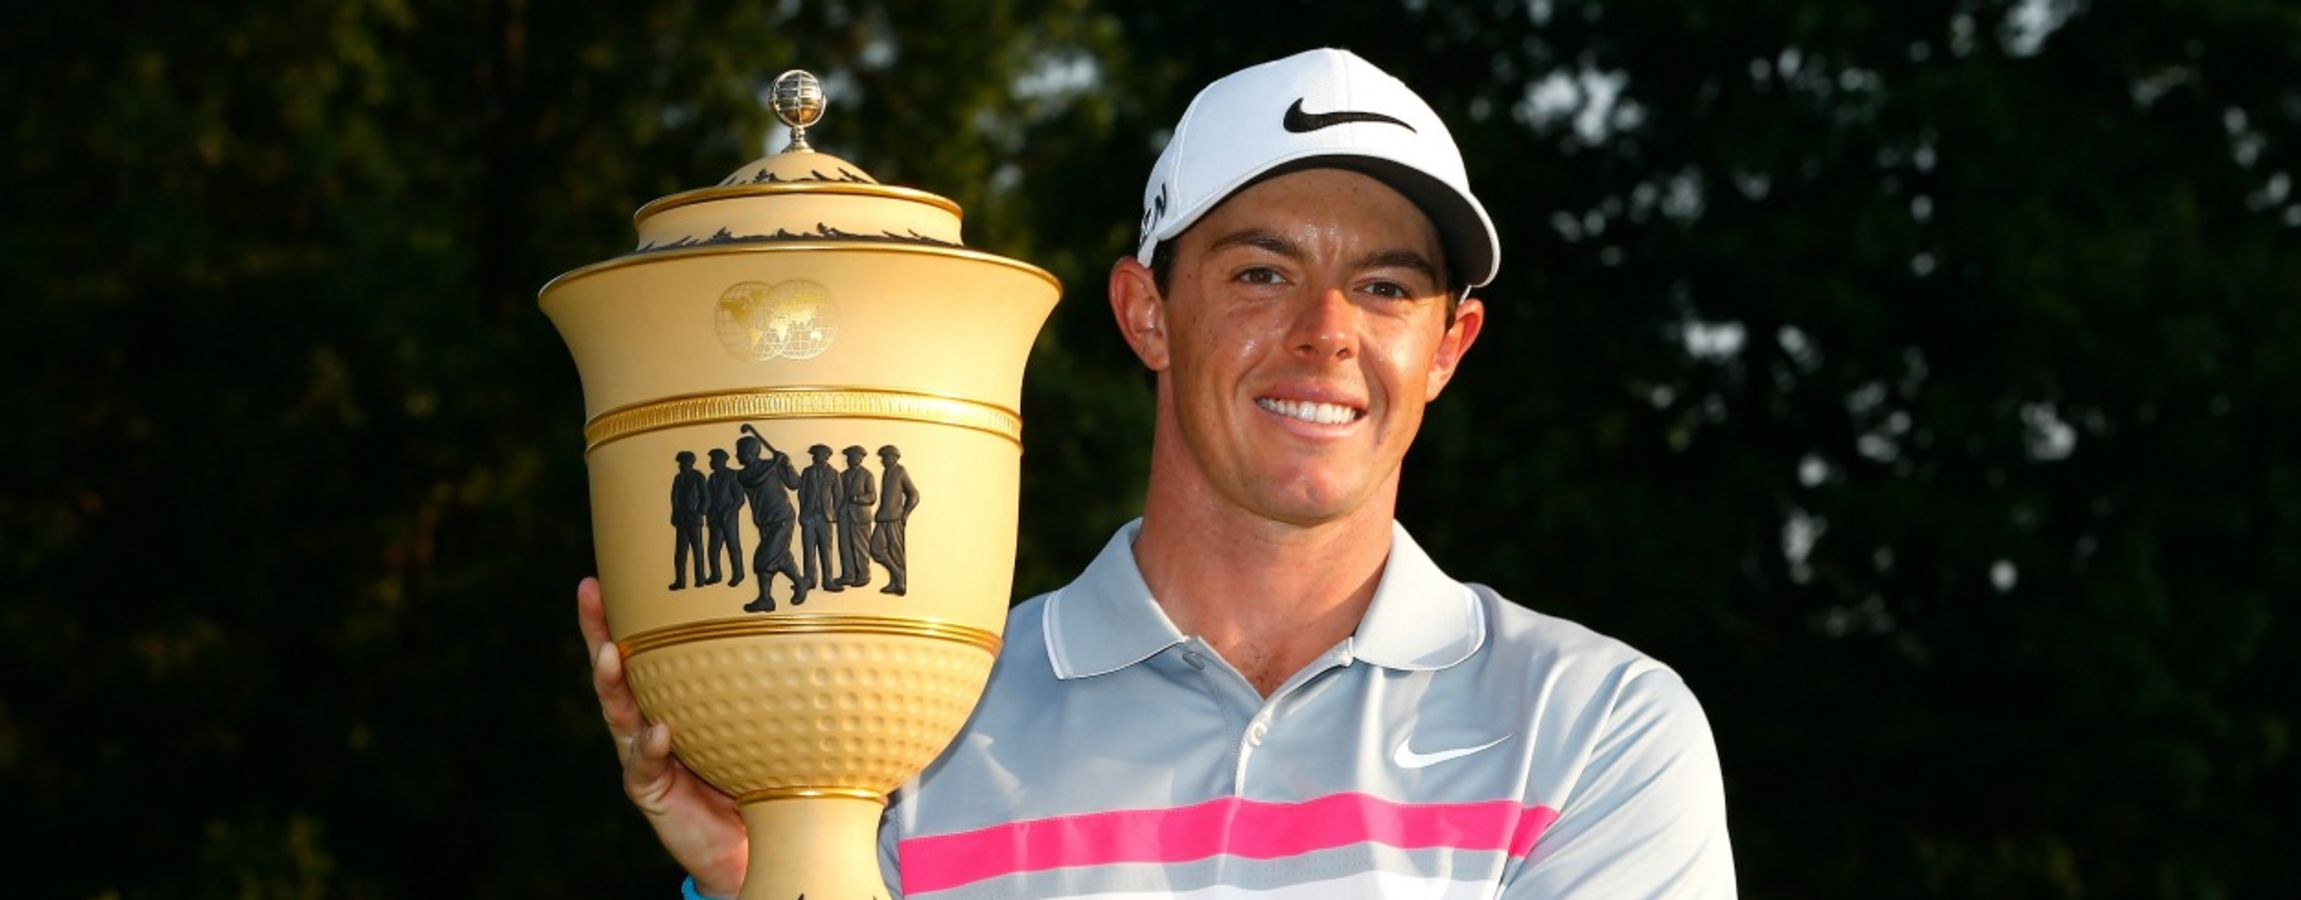 Akron, OH - Rory McIlroy of Northern Ireland is set to defend his 2014 title